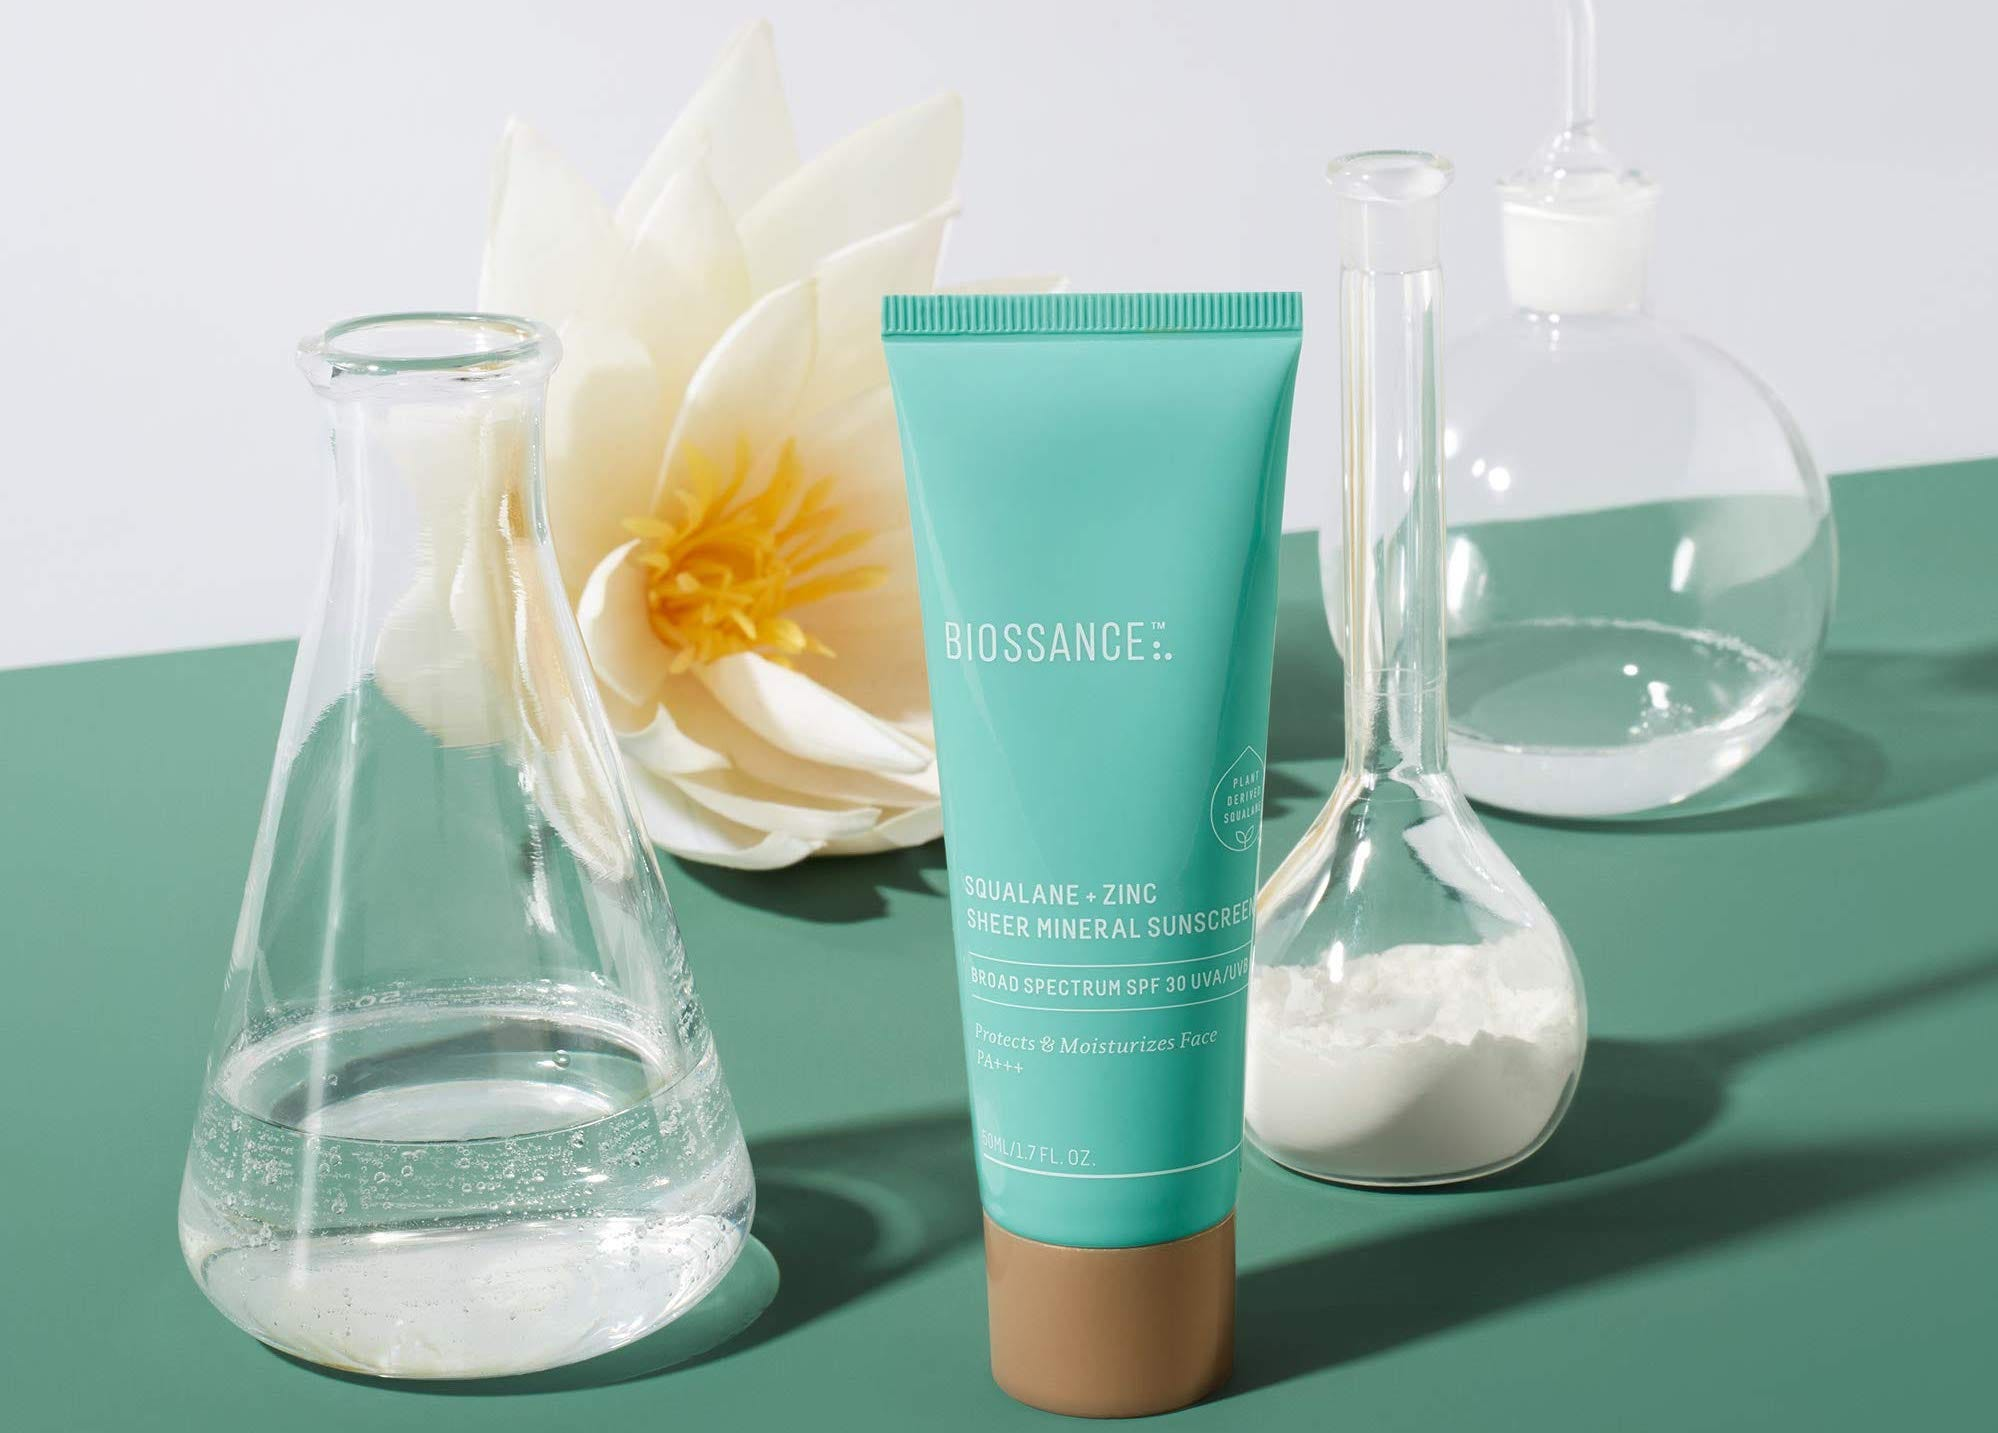 A green tube of sunscreen on a green counter with glass chemistry flasks next to it